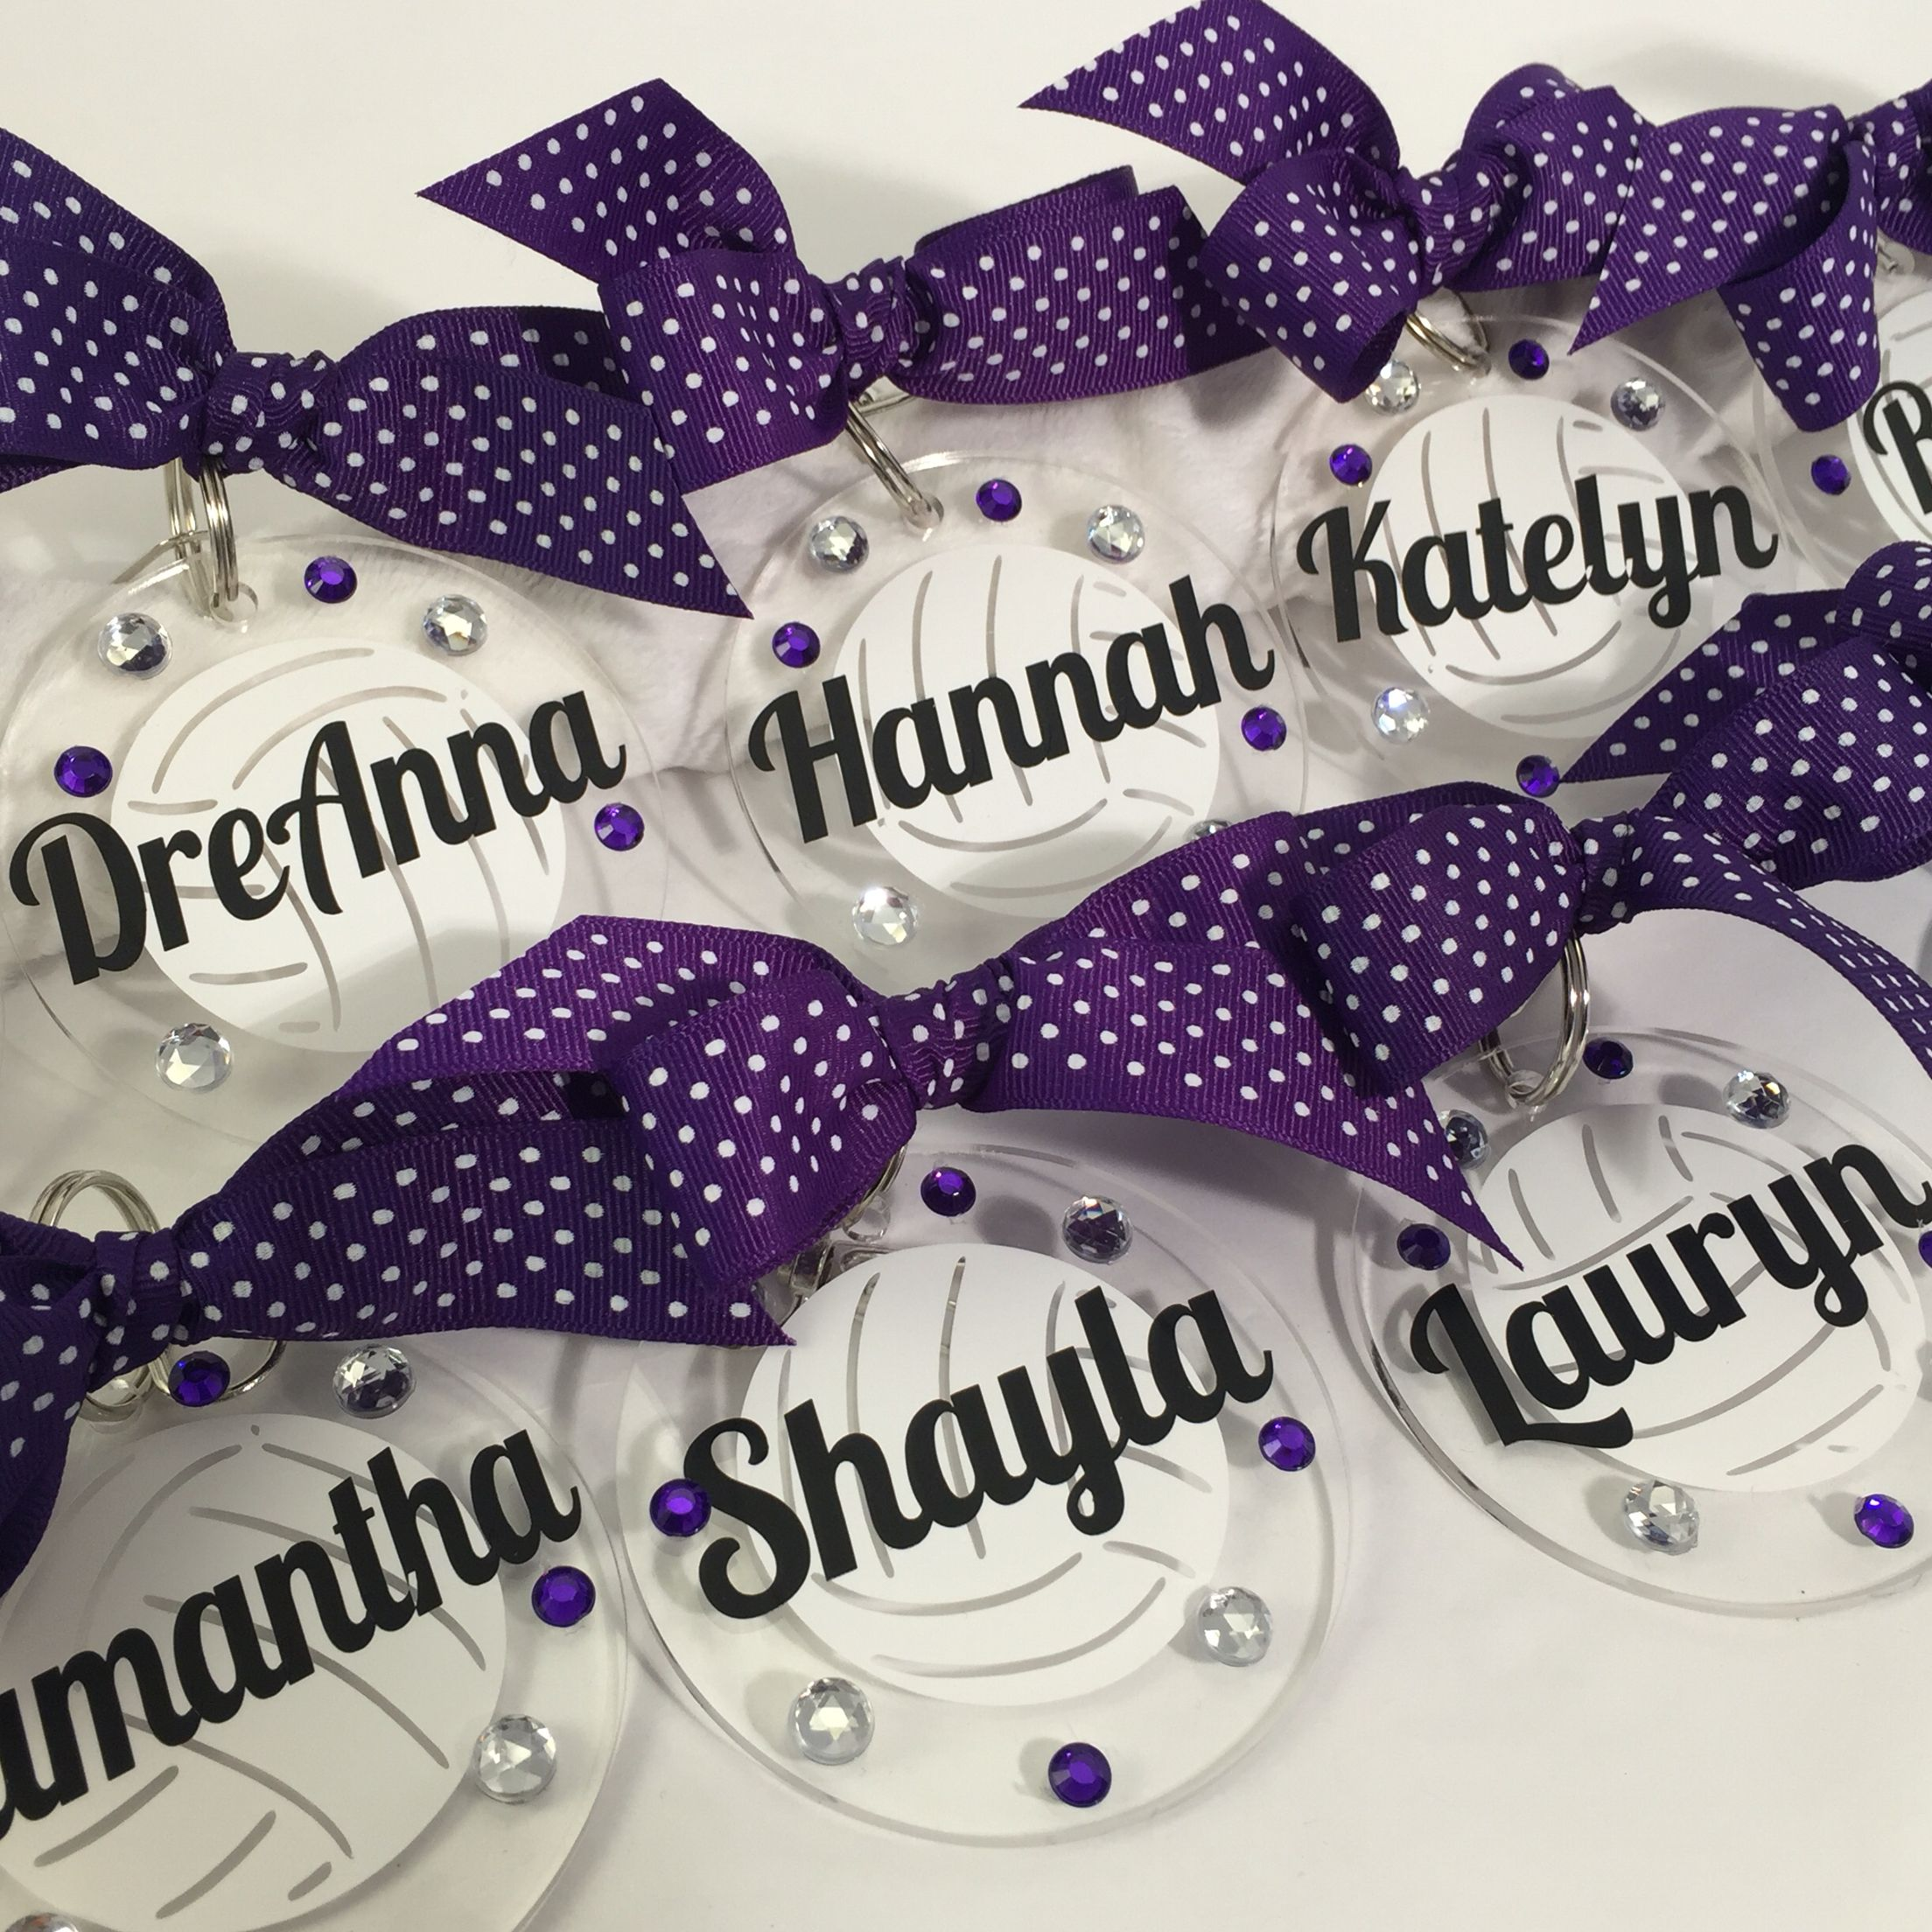 Volleyball Bag Tags In Purple From Www Gemlights Etsy Com Volleyball Bag Tags Bag Tags Acrylic Keychains